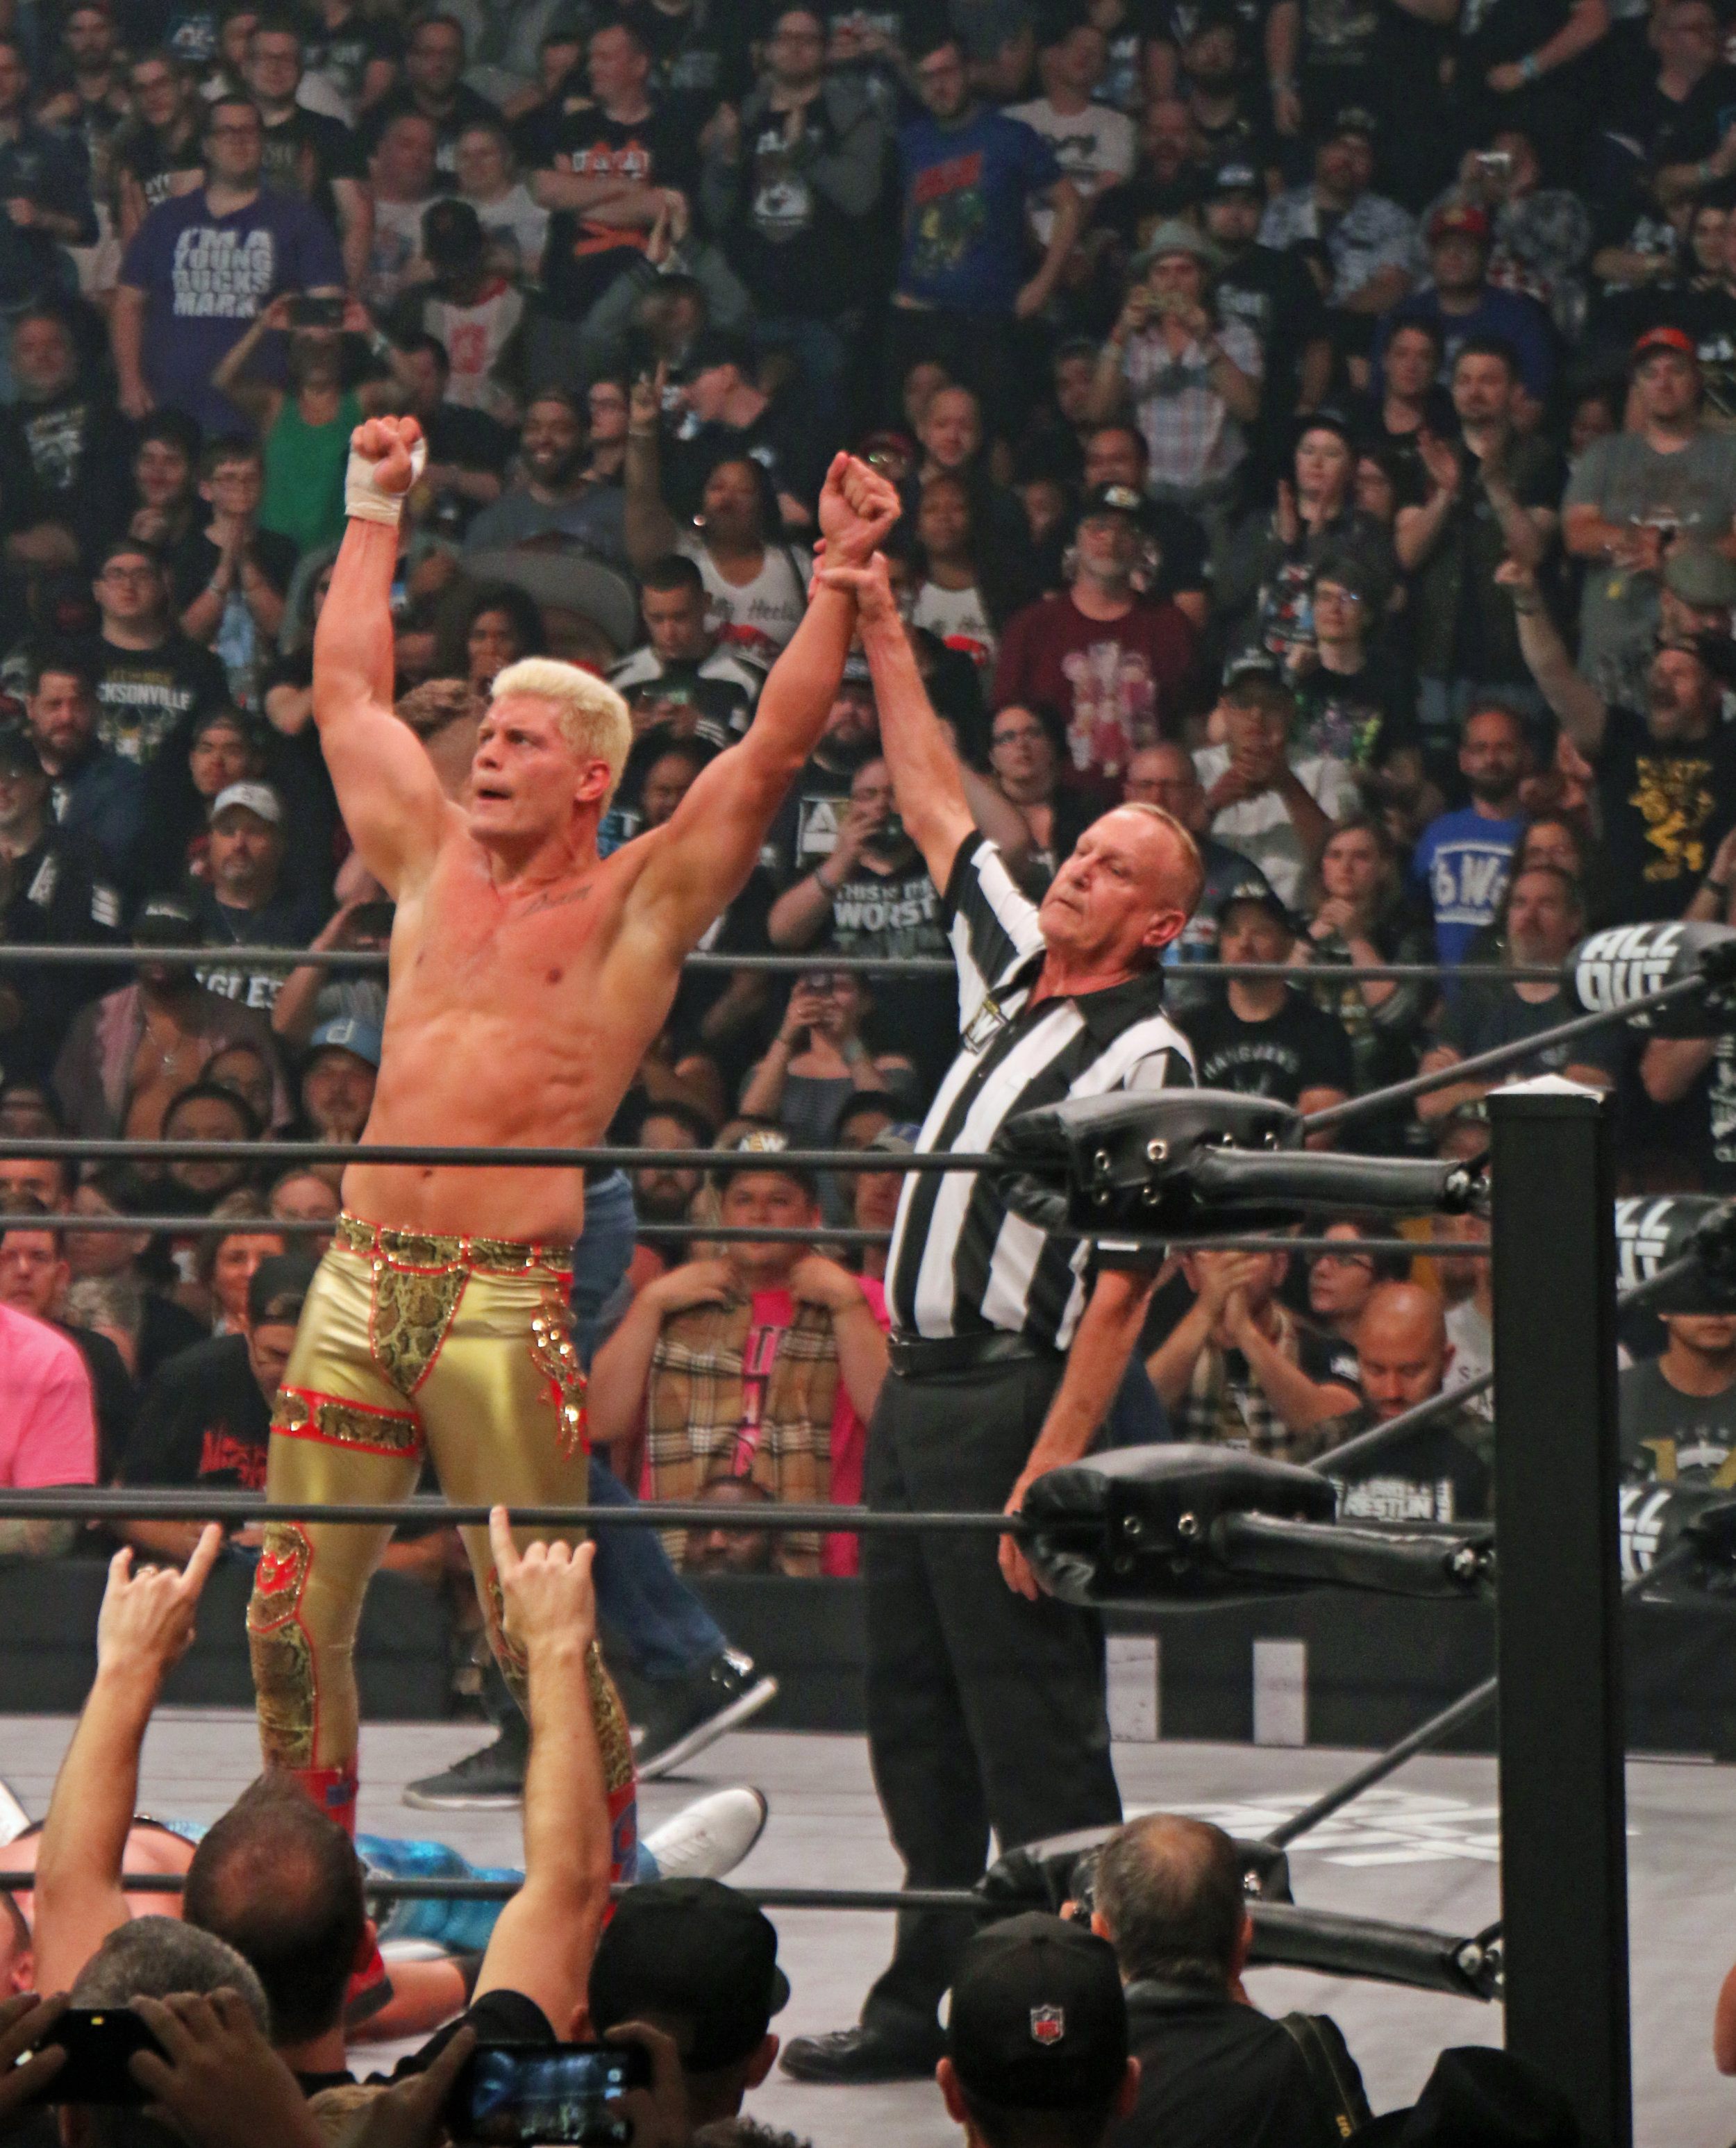 Cody gets his hand raised by Earl Hebner after defeating Shawn Spears.